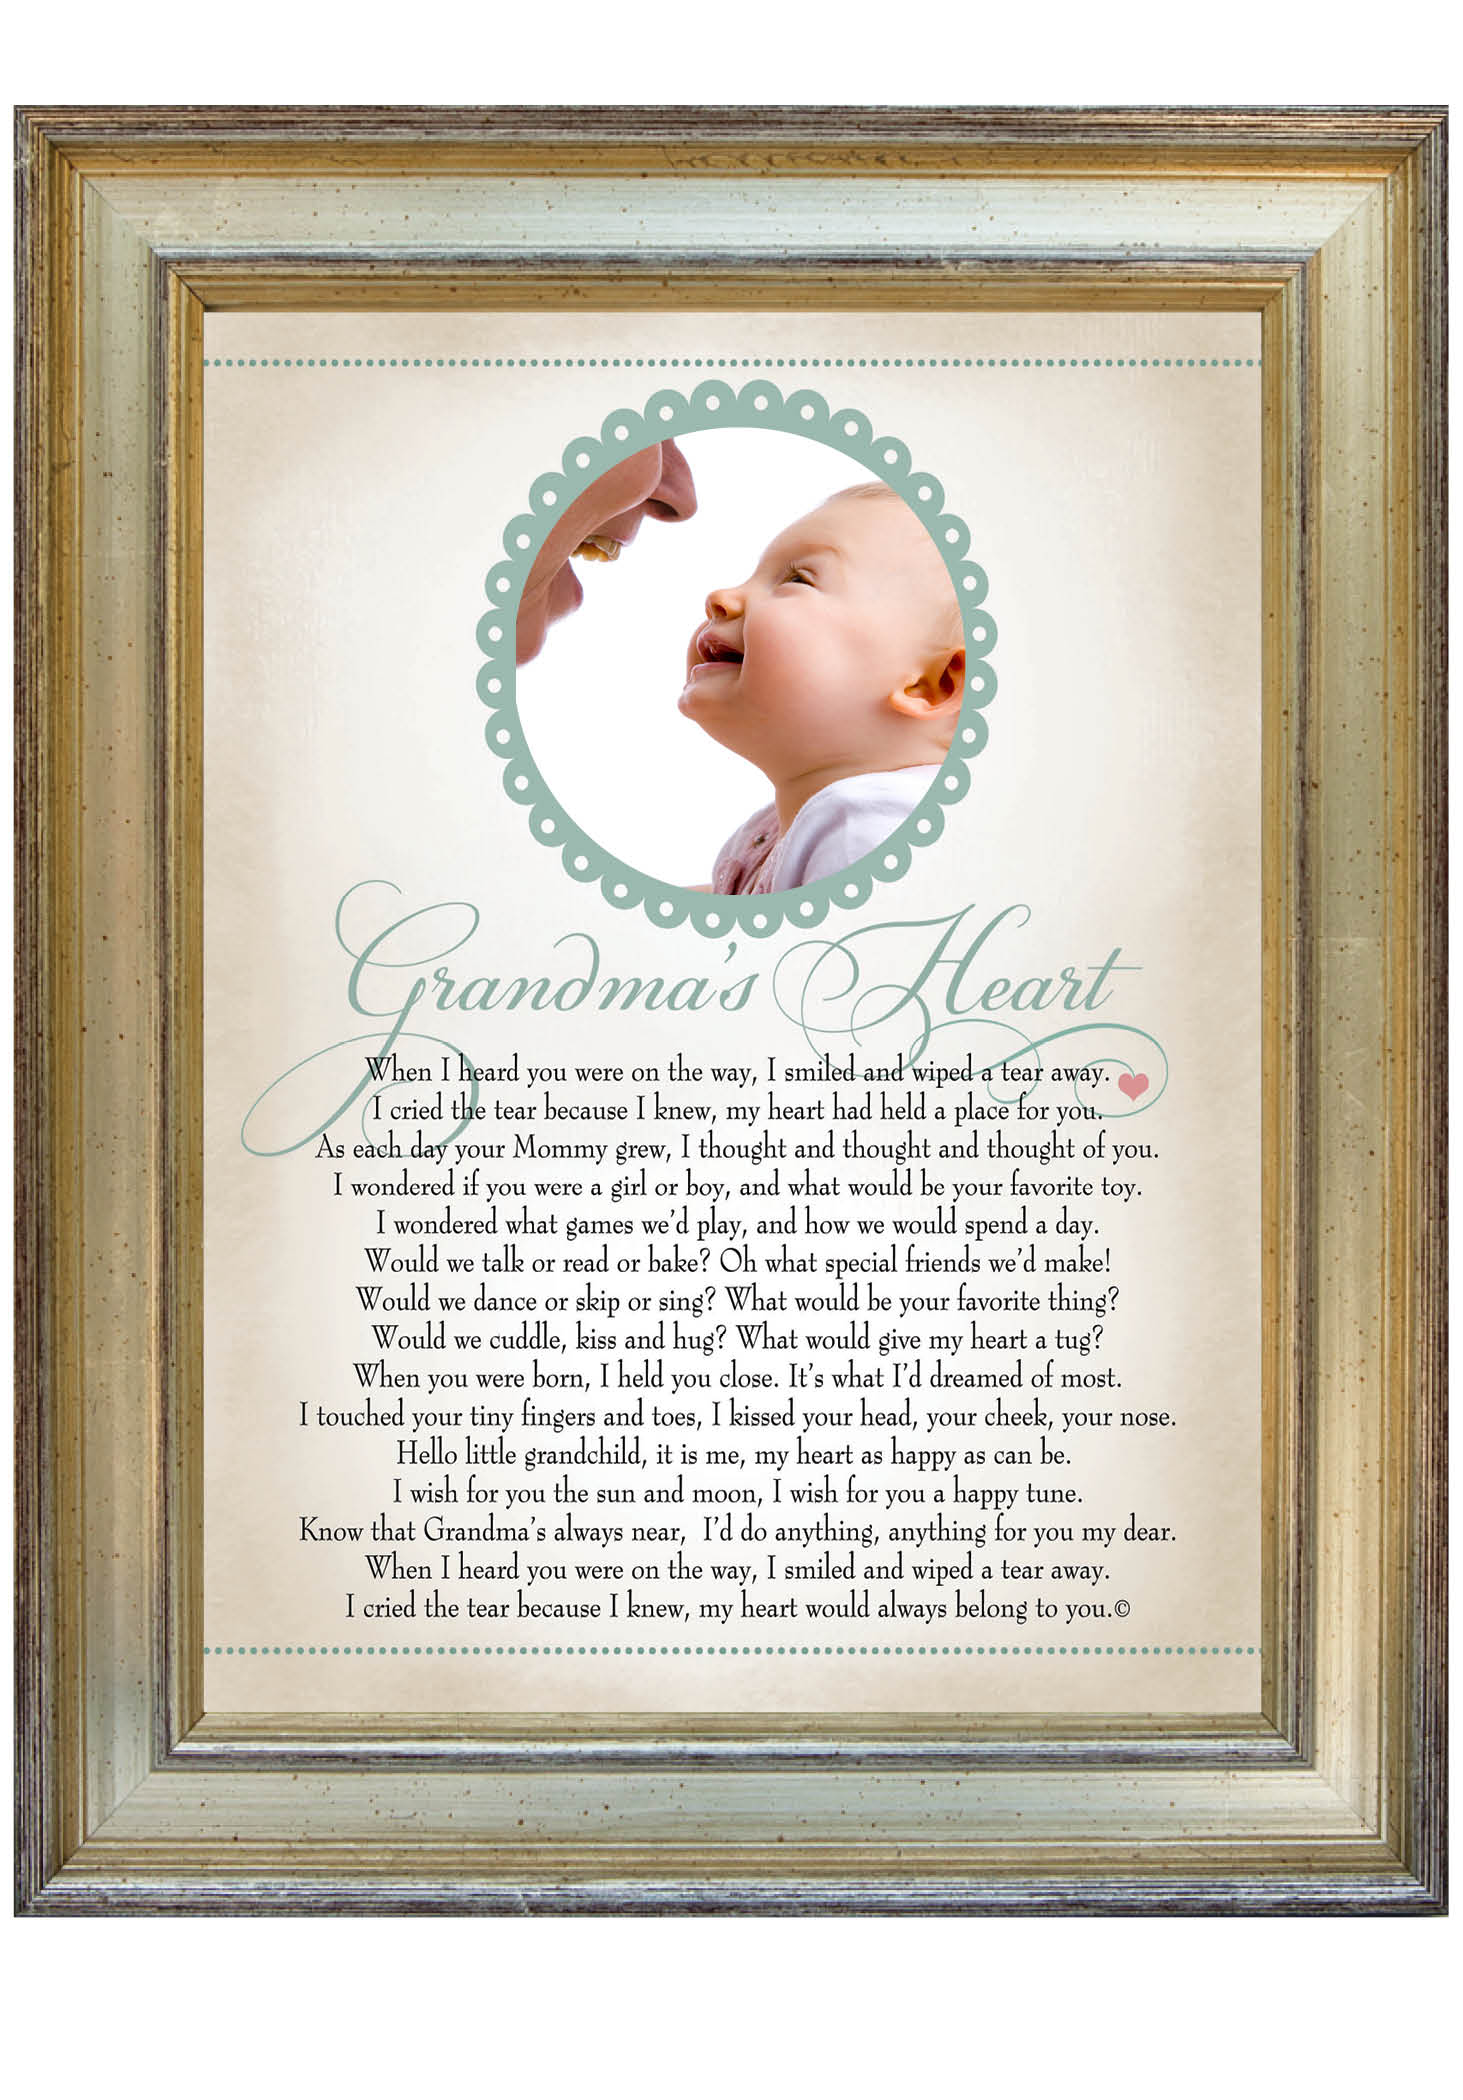 first grandchild | The Orange SliceThe Orange Slice